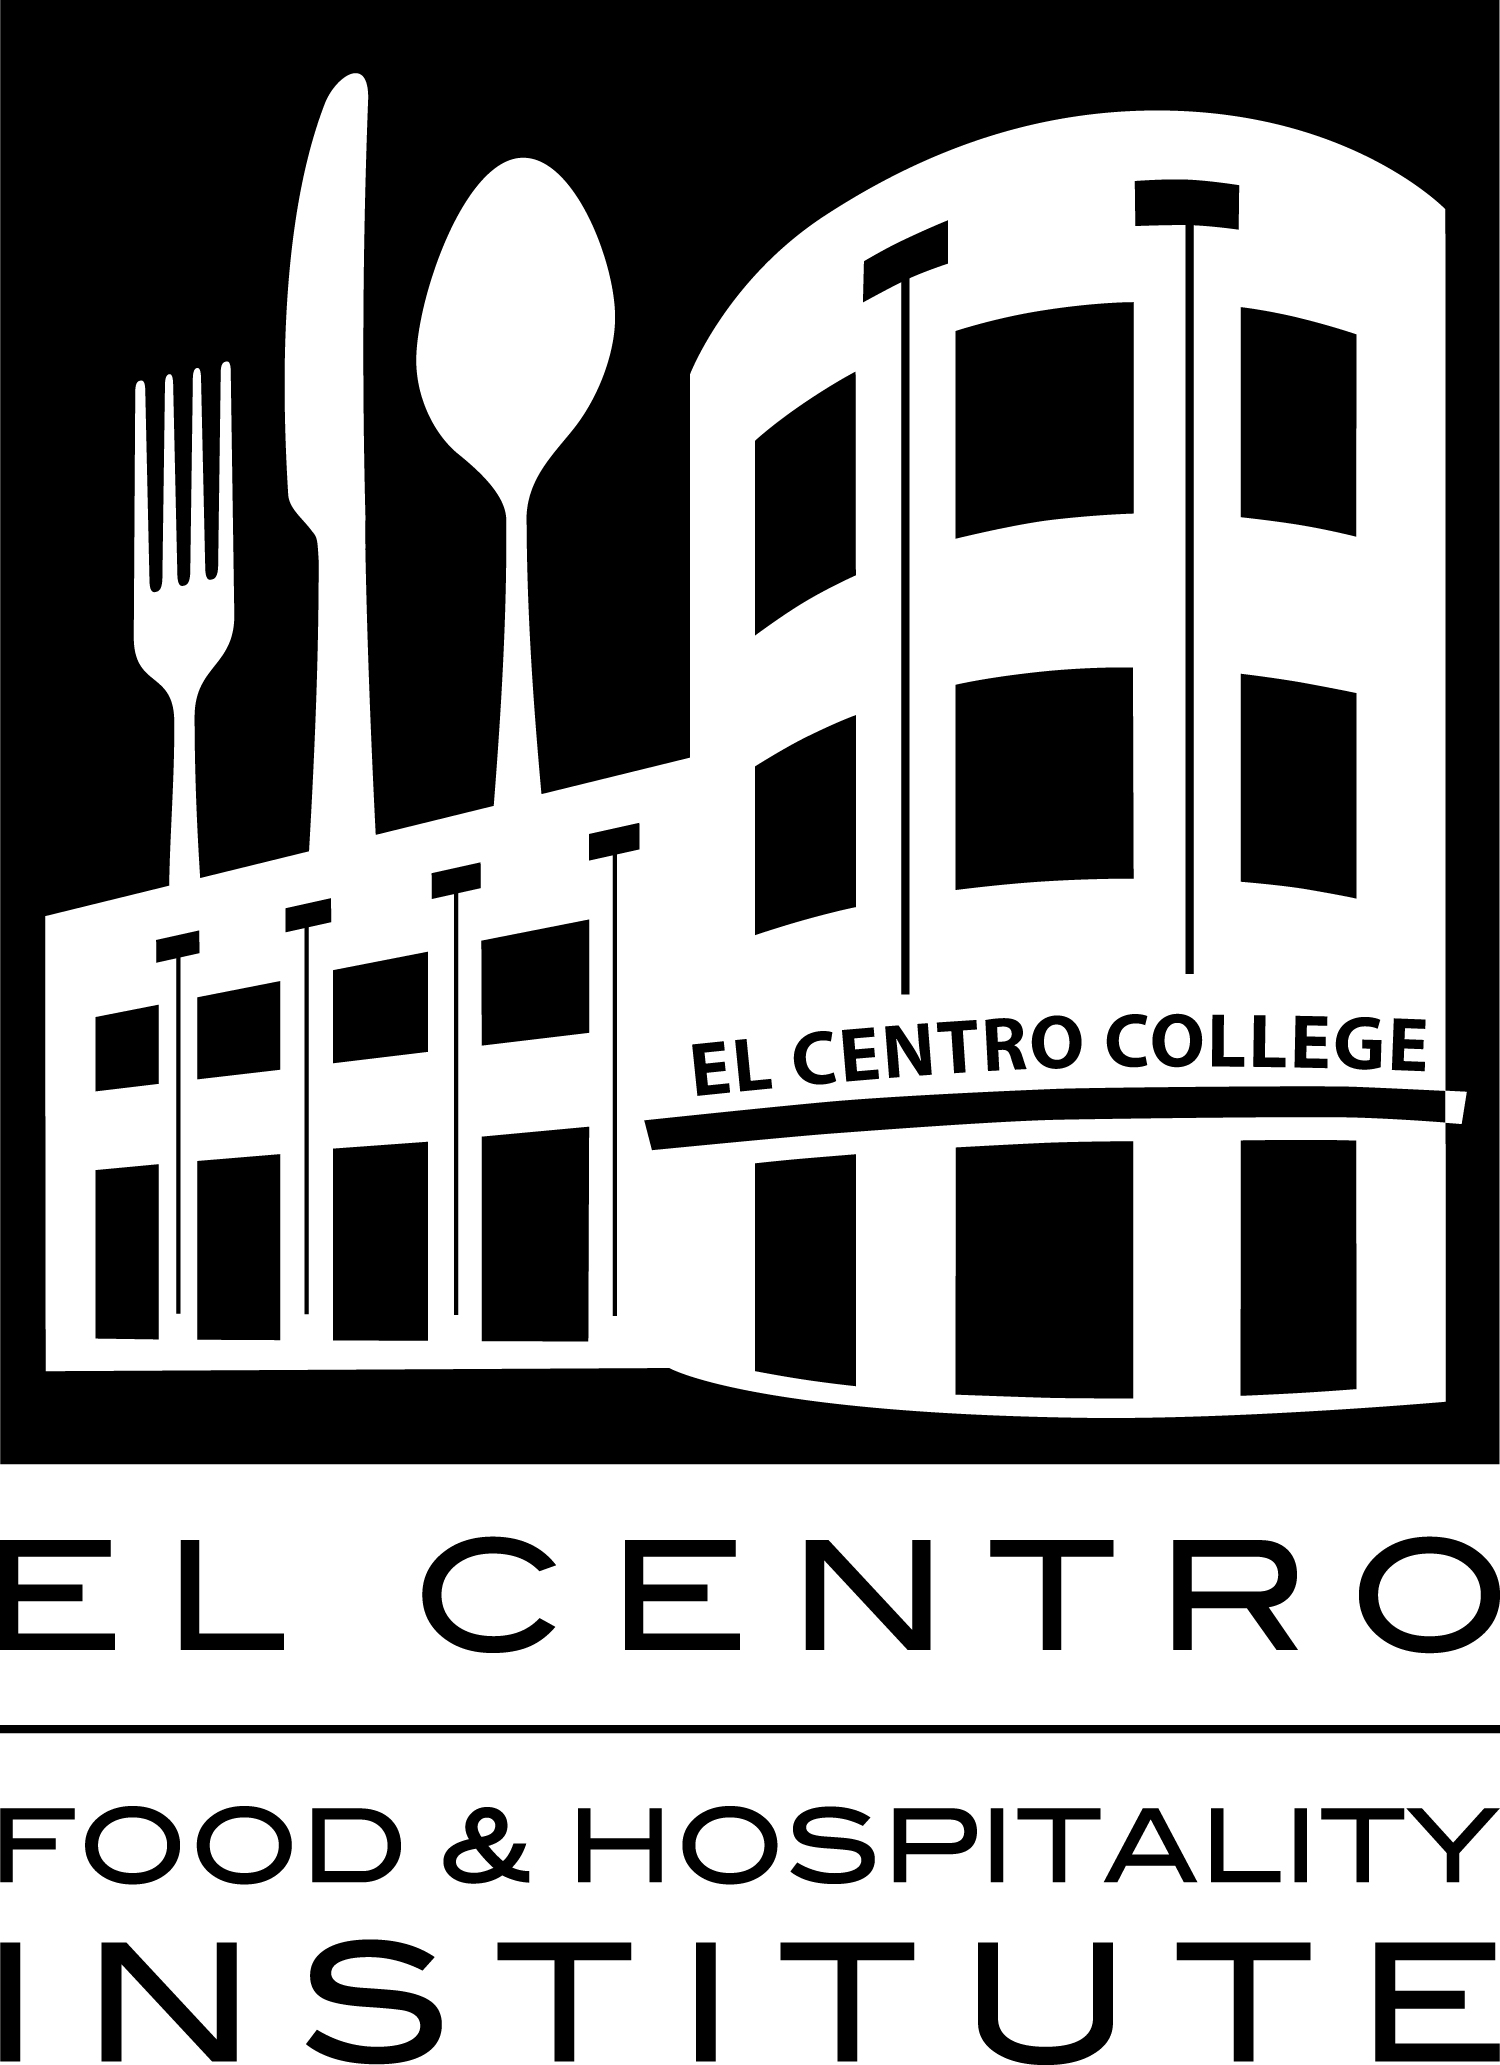 El Centro College Food and Hospitality Institute -